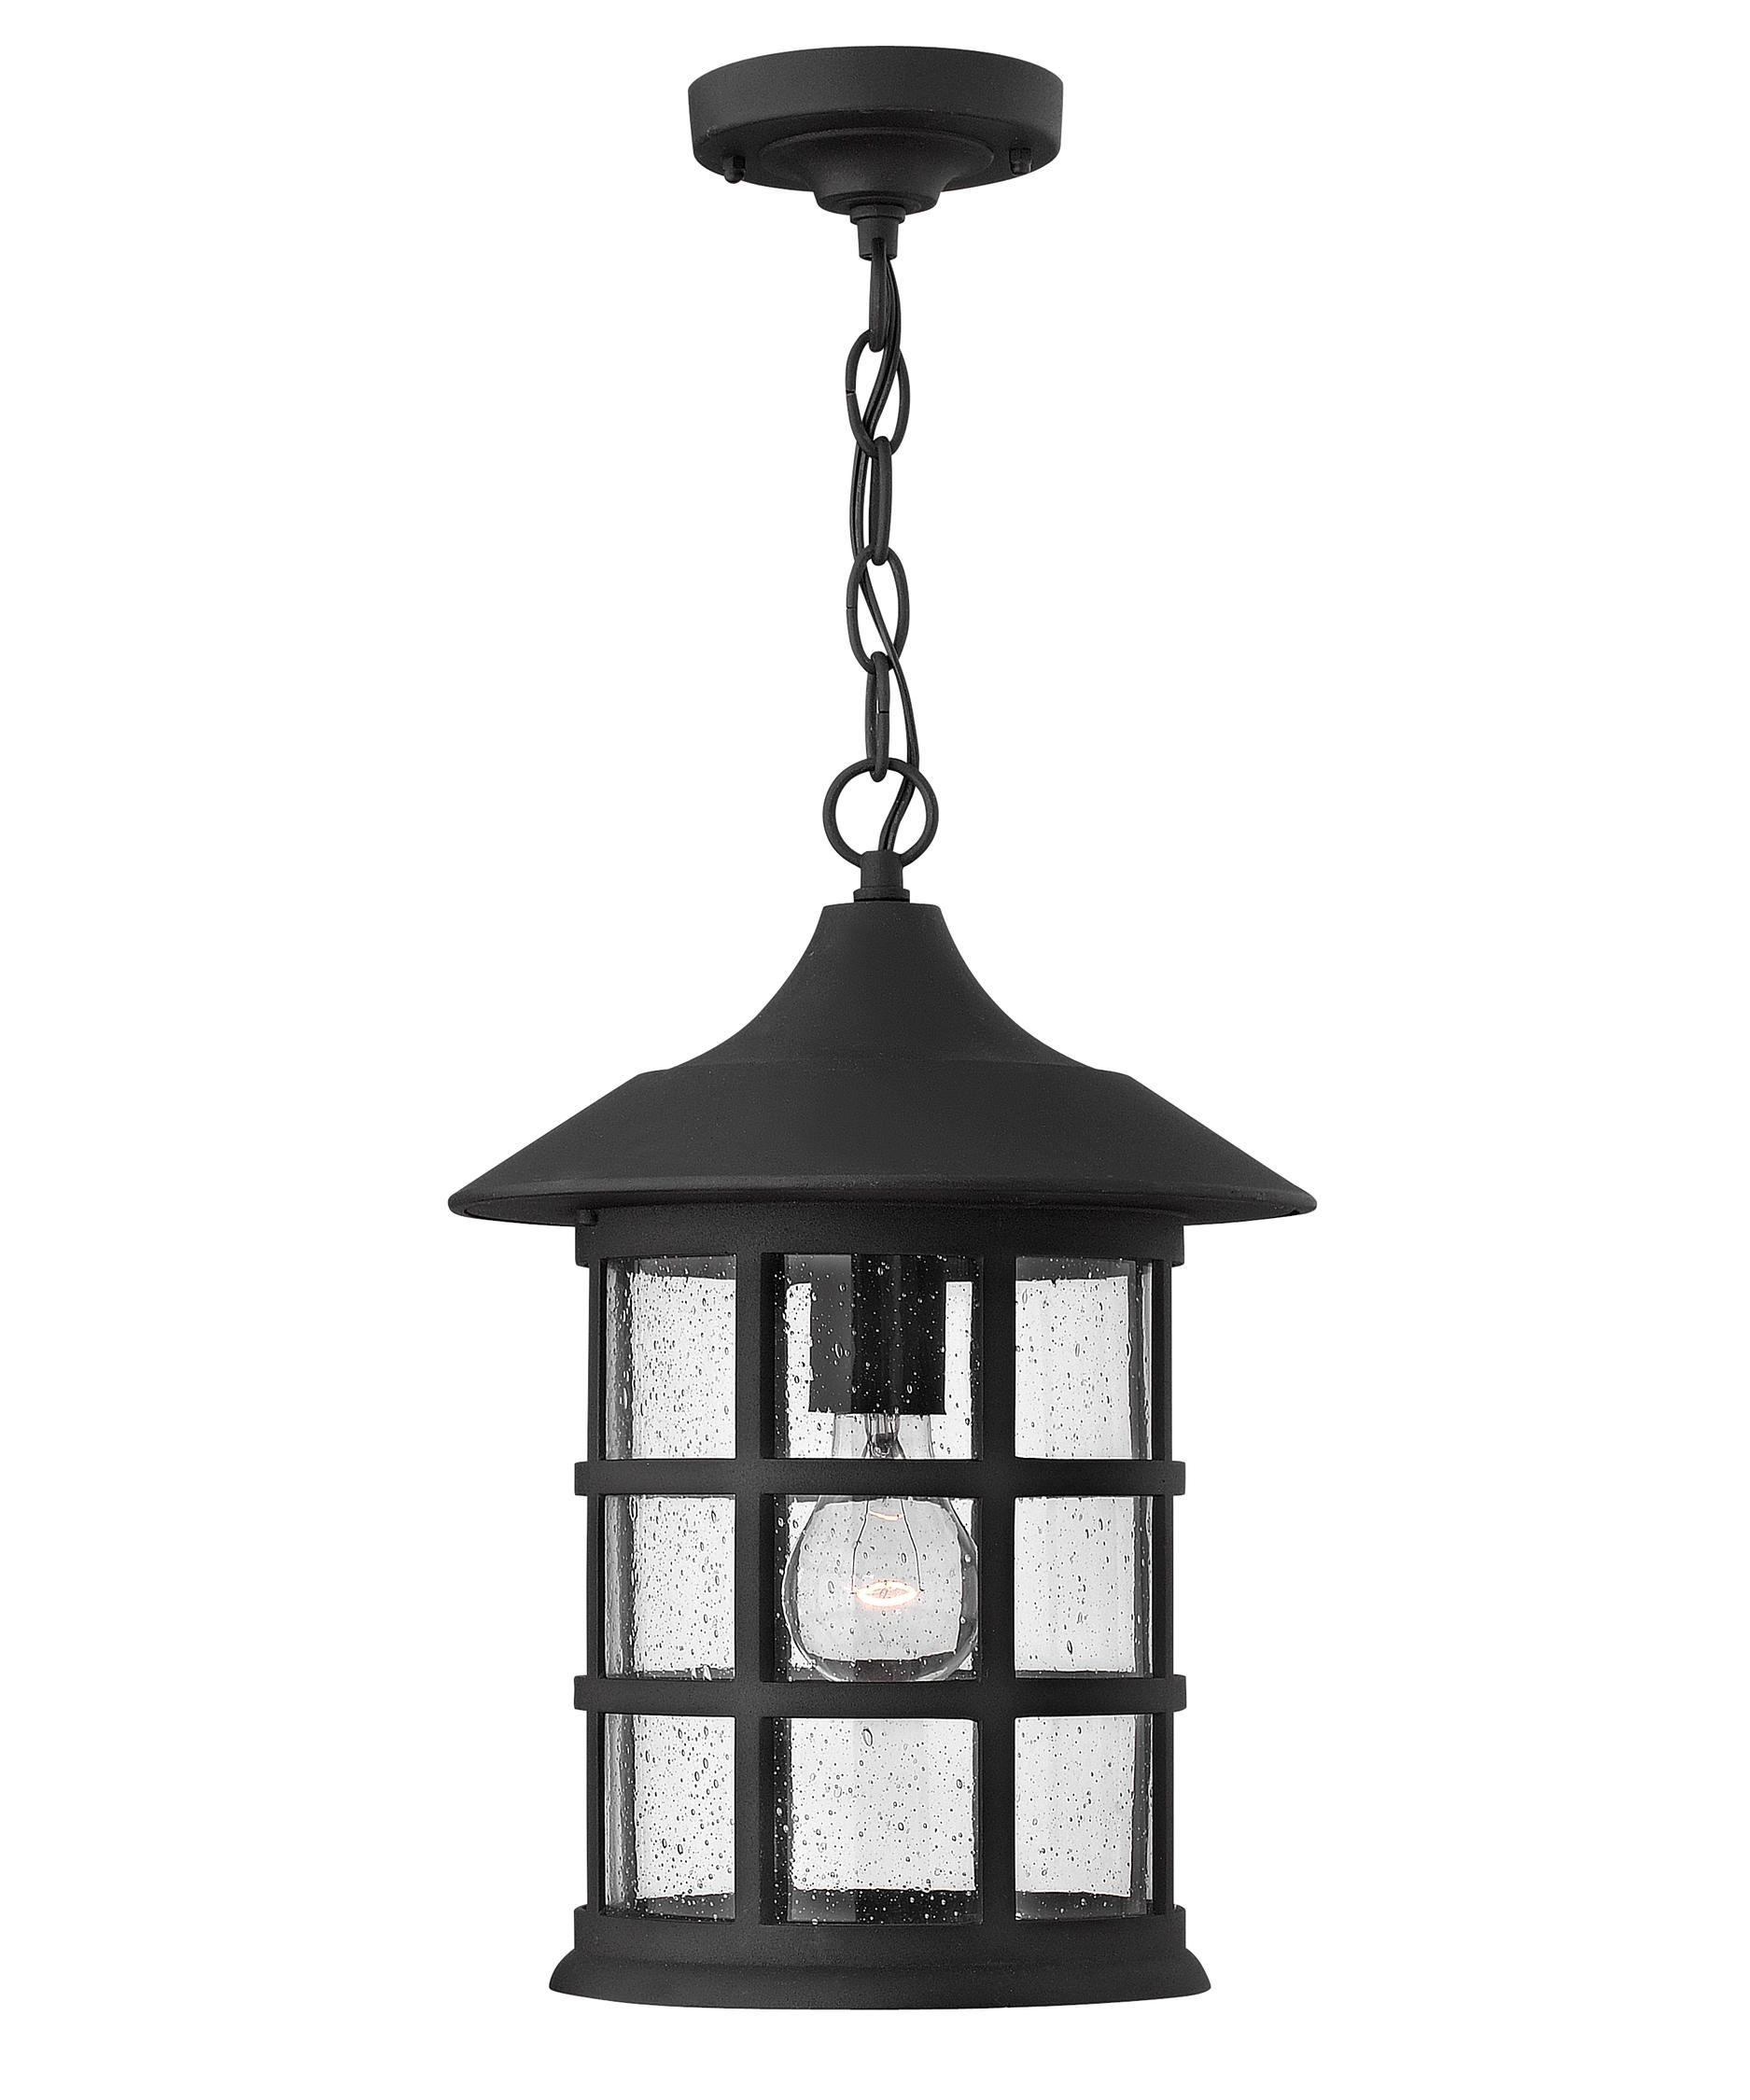 Hinkley Lighting 1802 Freeport 10 Inch Wide 1 Light Outdoor Hanging Regarding Outdoor Hanging Lanterns With Candles (View 10 of 15)